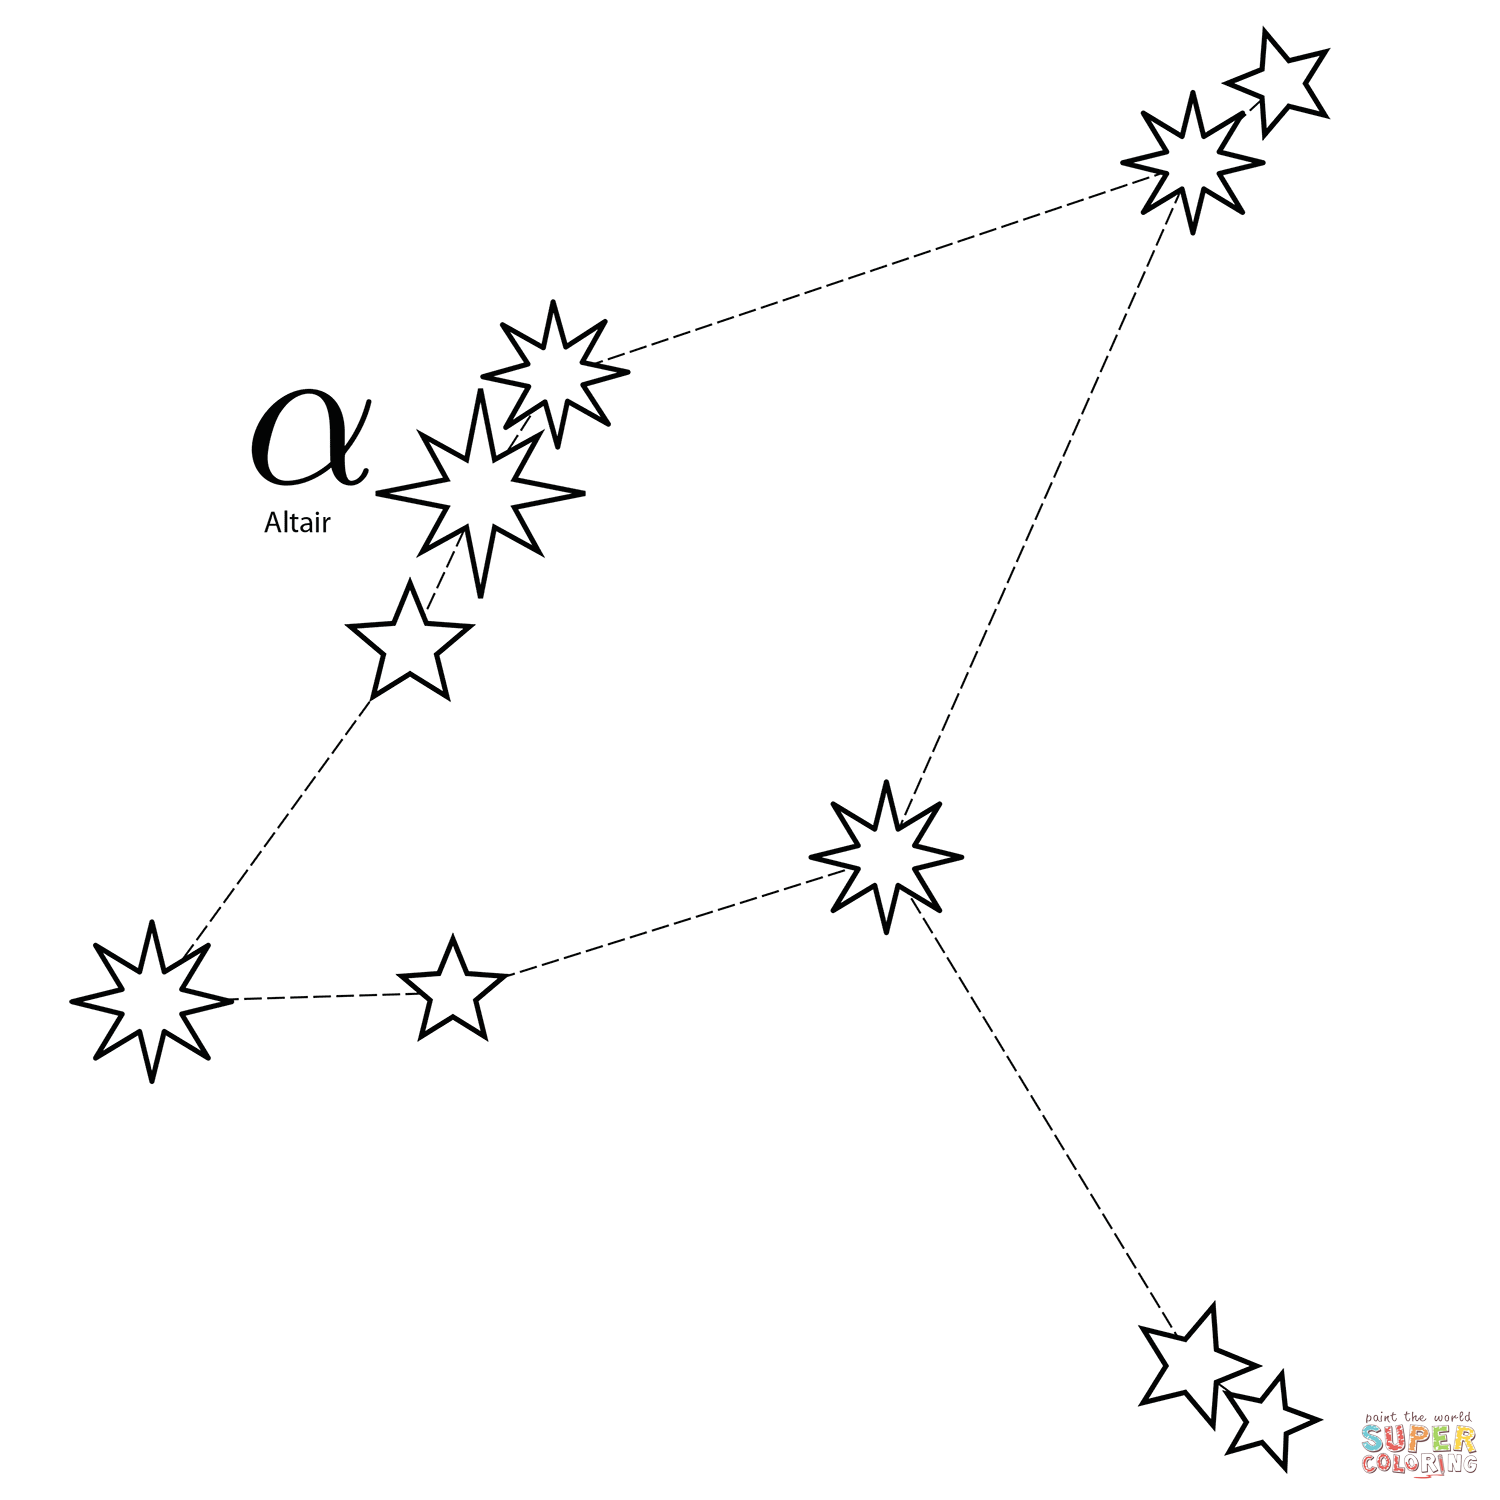 Aquila Constellation Coloring Page